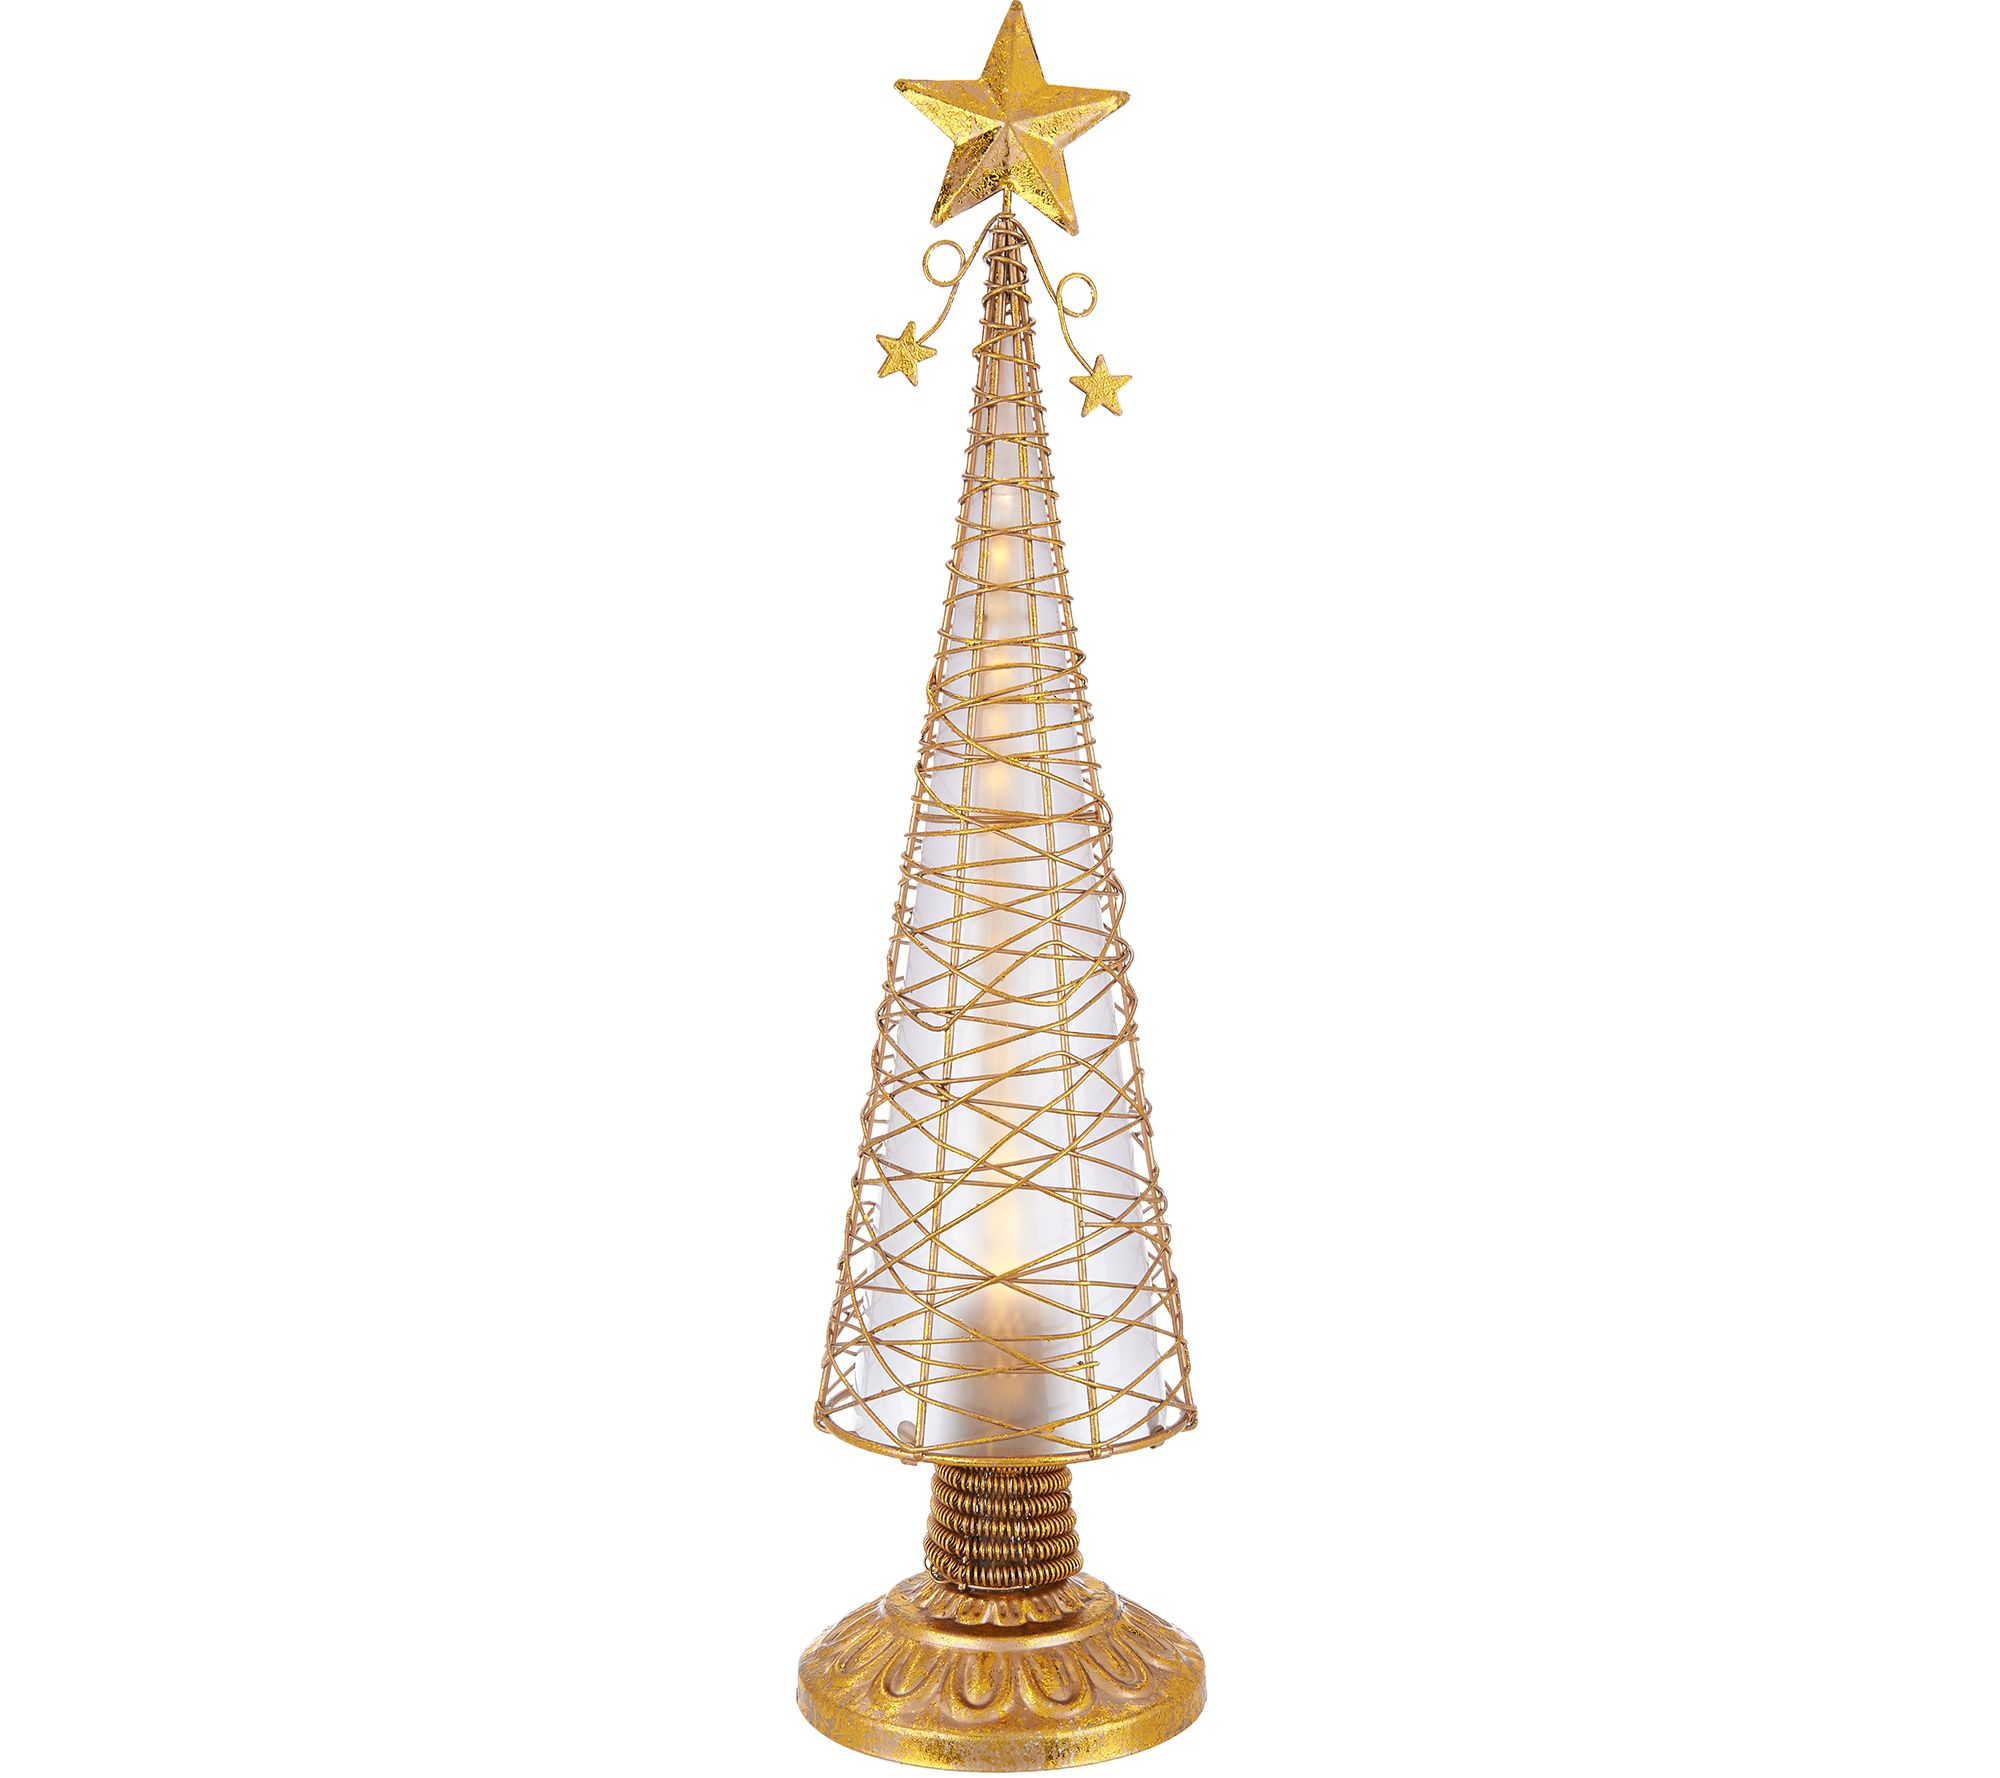 kringle express 18 illuminated chasing lights metal christmas tree with timer page 1 qvccom